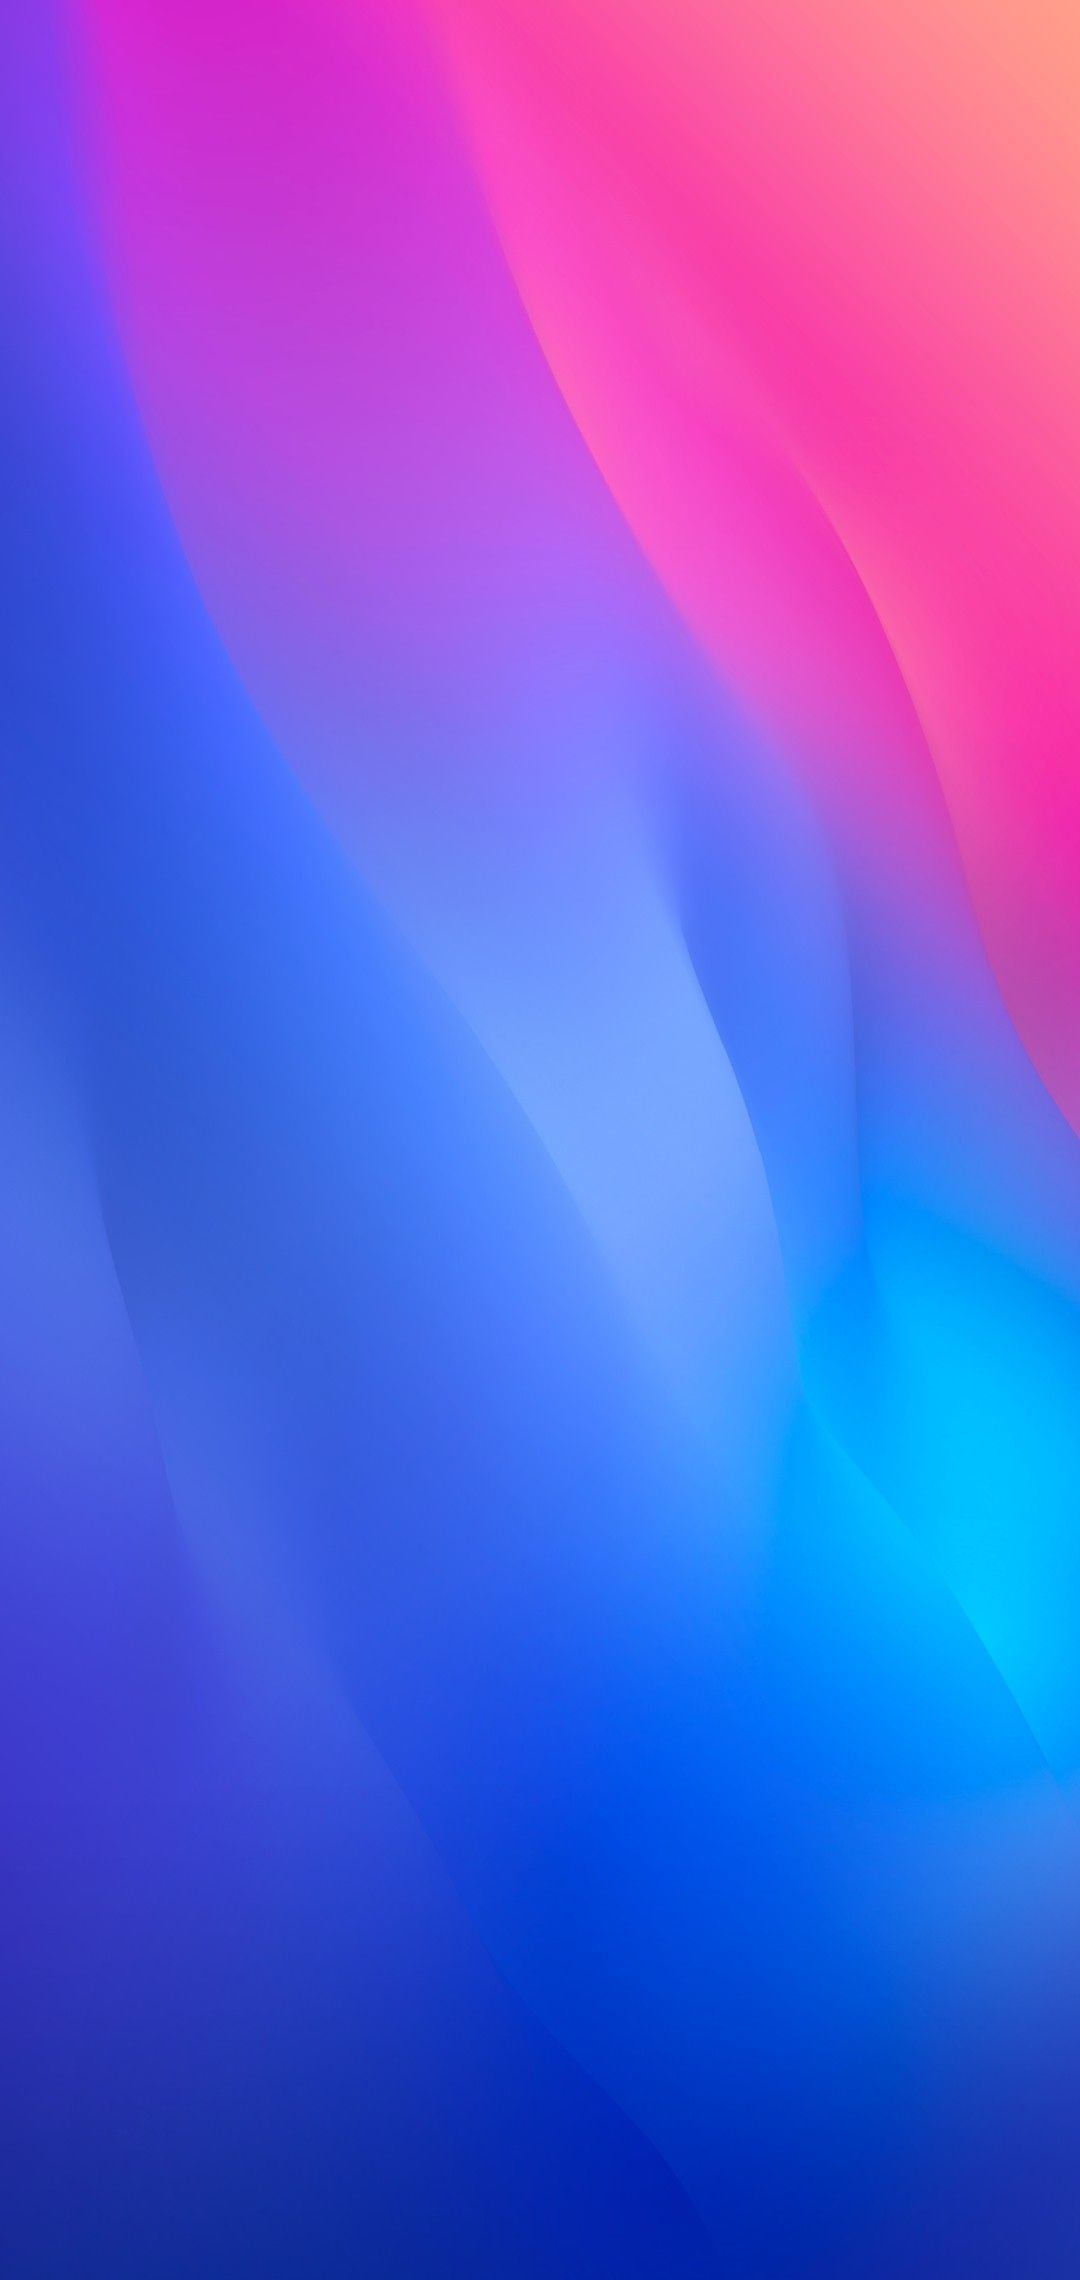 iPhone 12 Wallpapers - Top Free iPhone 12 Backgrounds ...